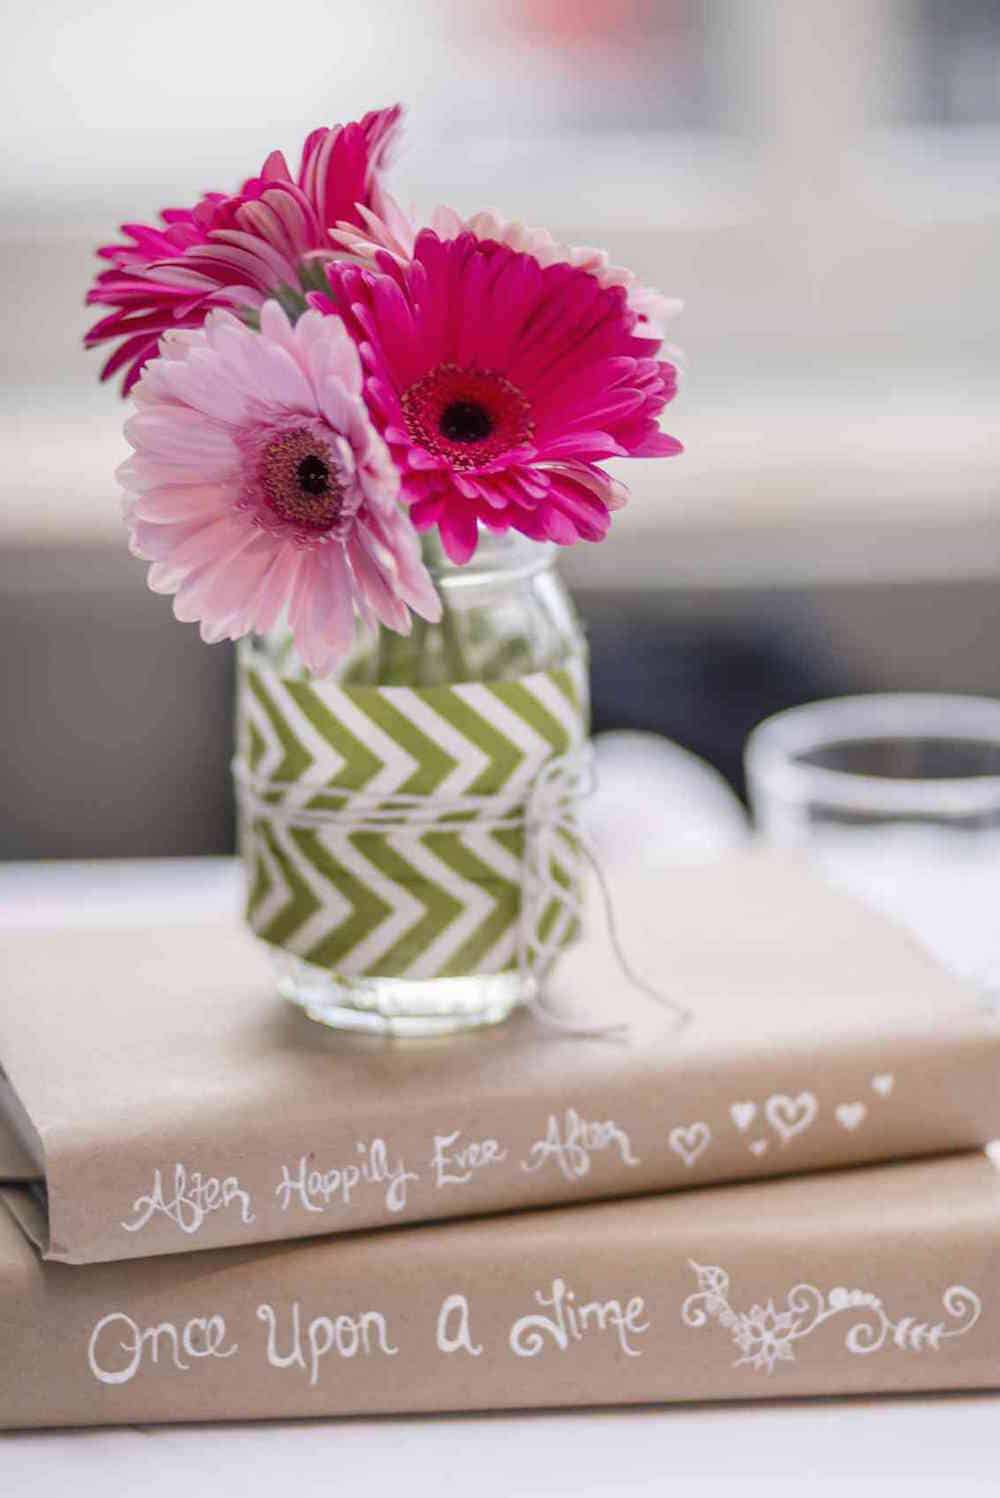 Fun Inexpensive DIY Weekend Projects - Vases